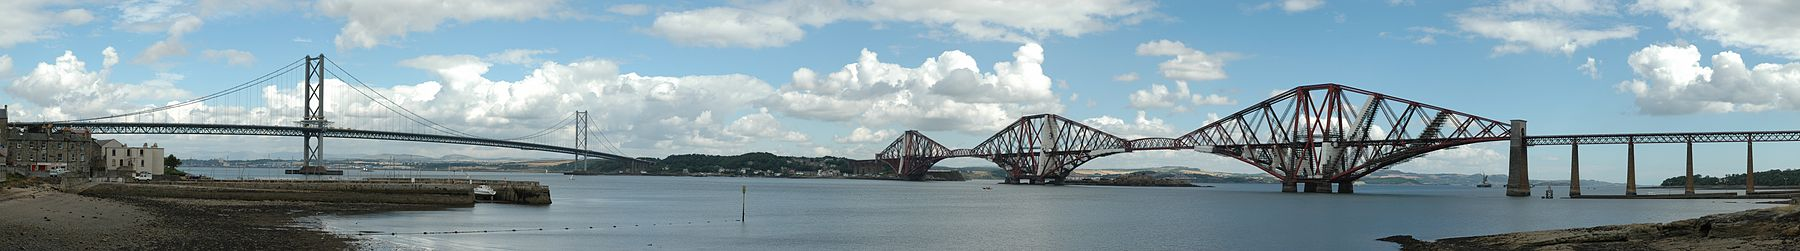 Firth of Forth bridges panorama by Greg Barbier 13750x1915.jpg